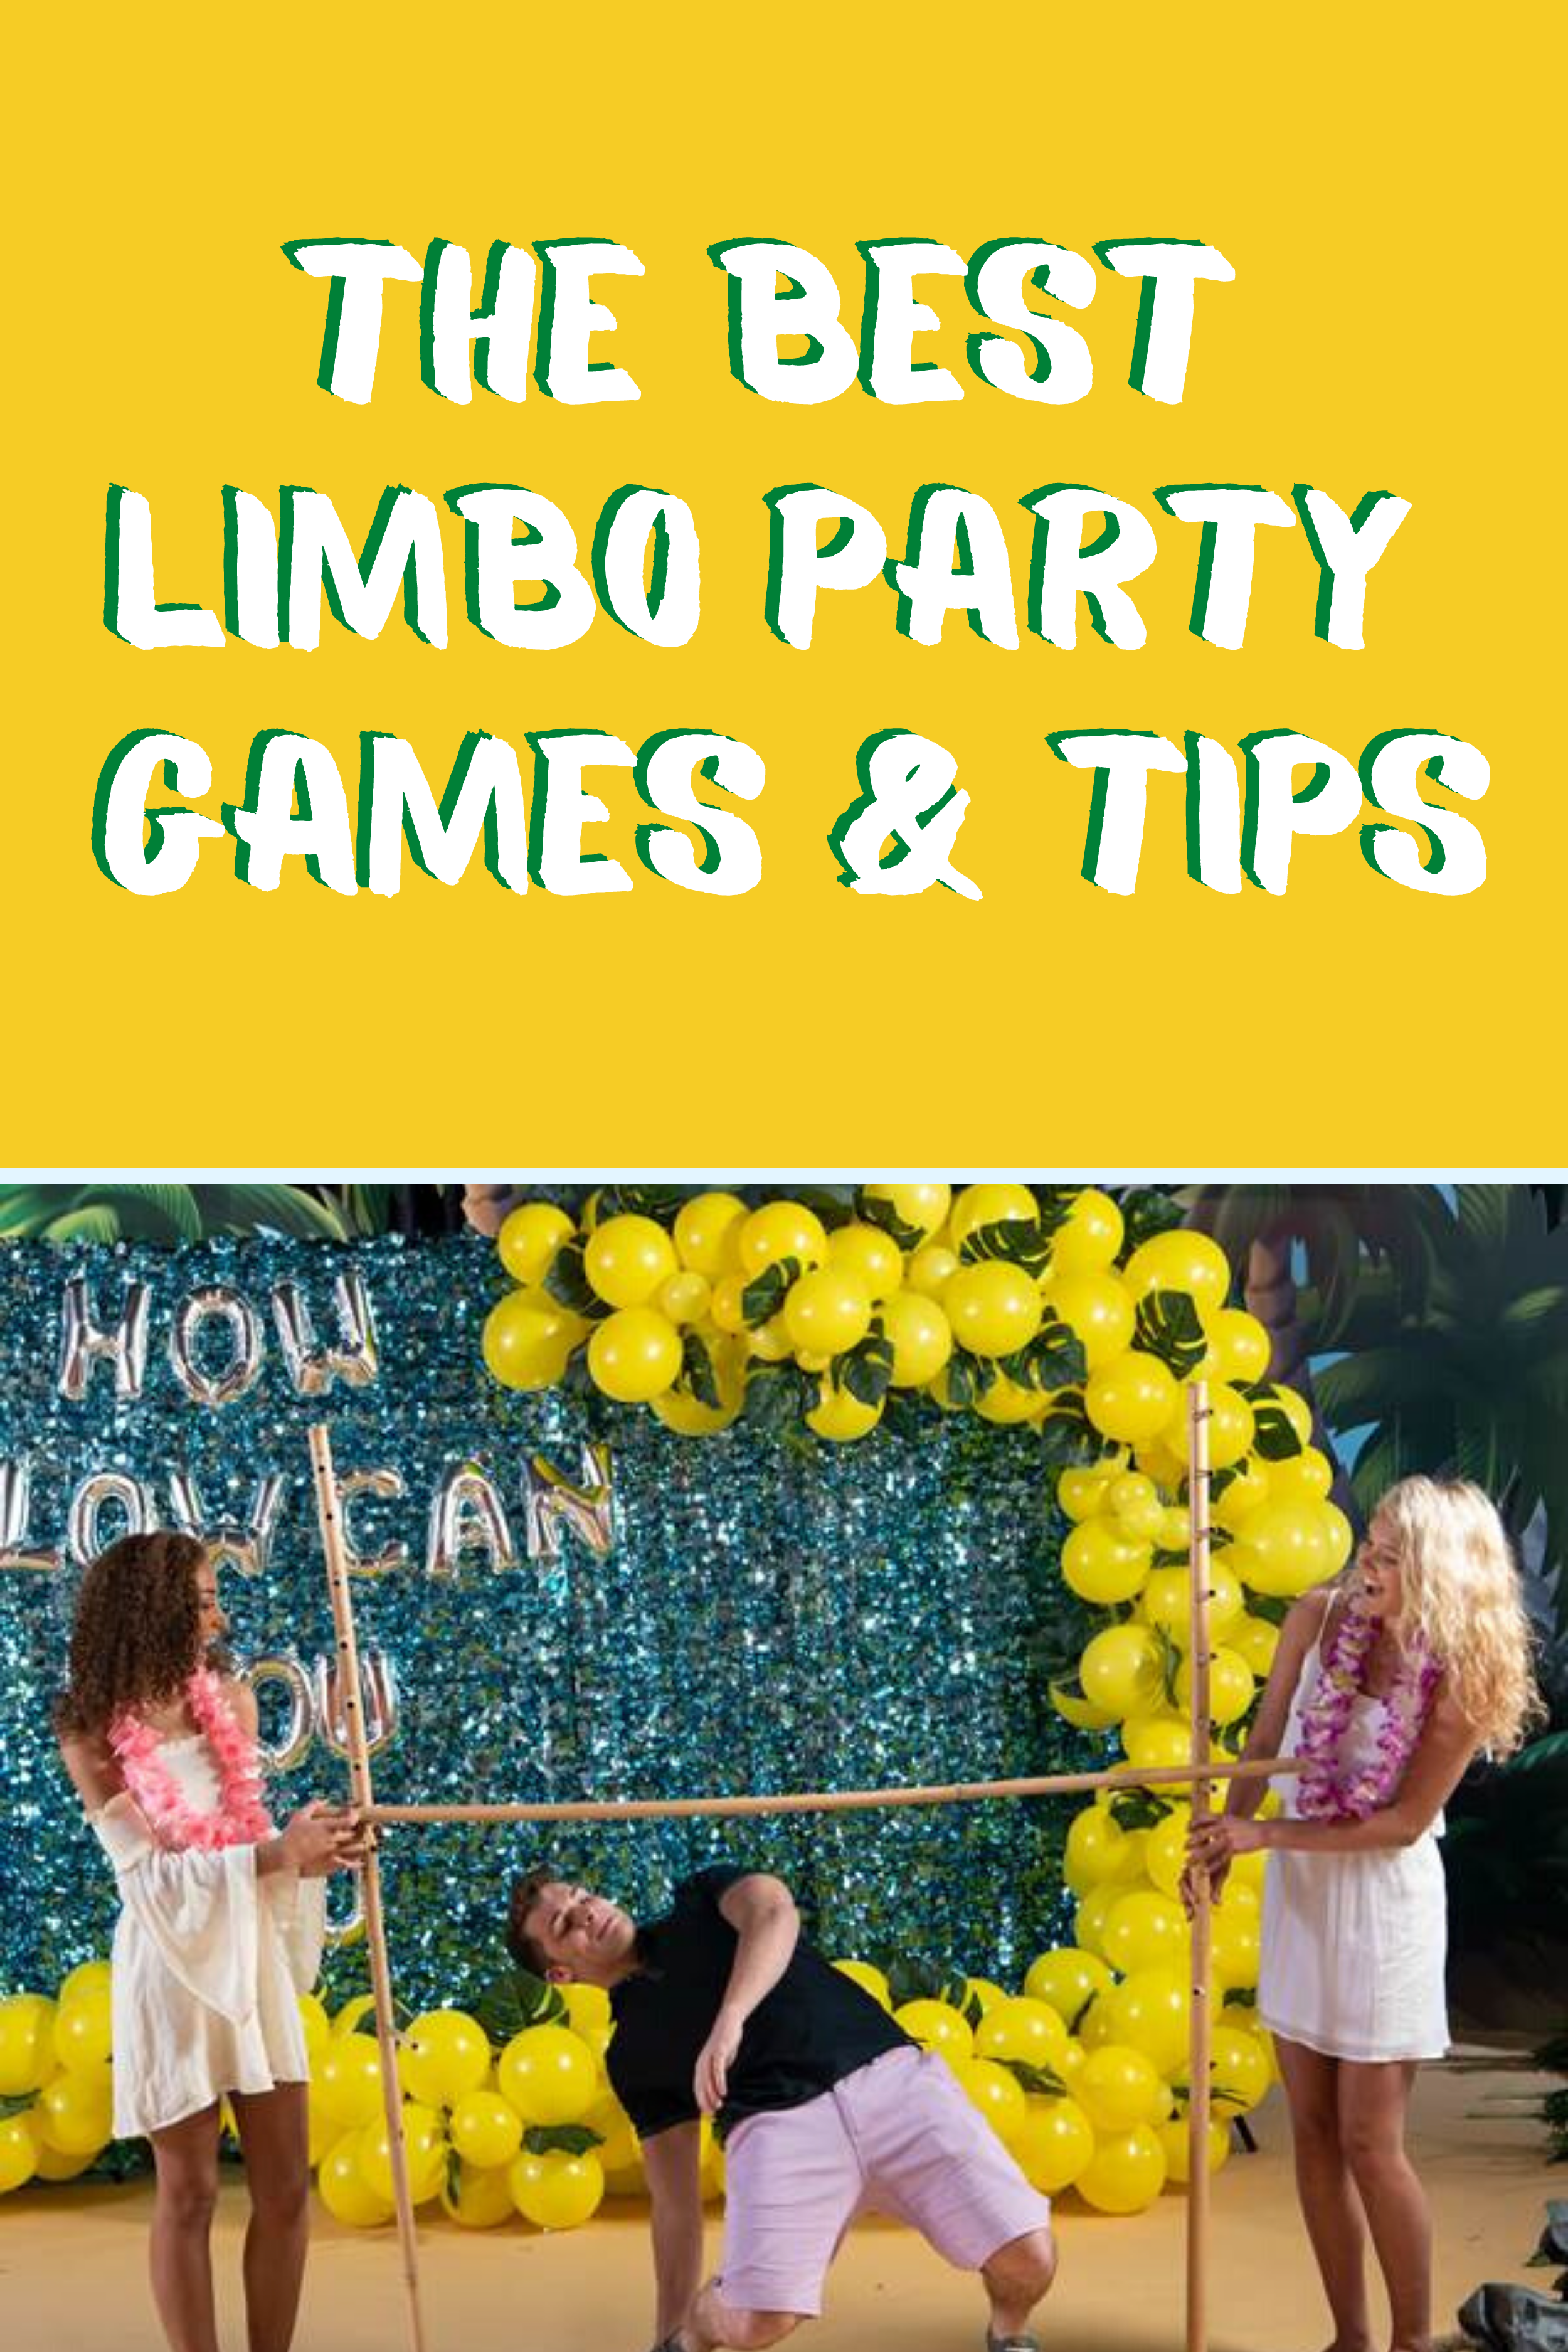 Limbo Party Games